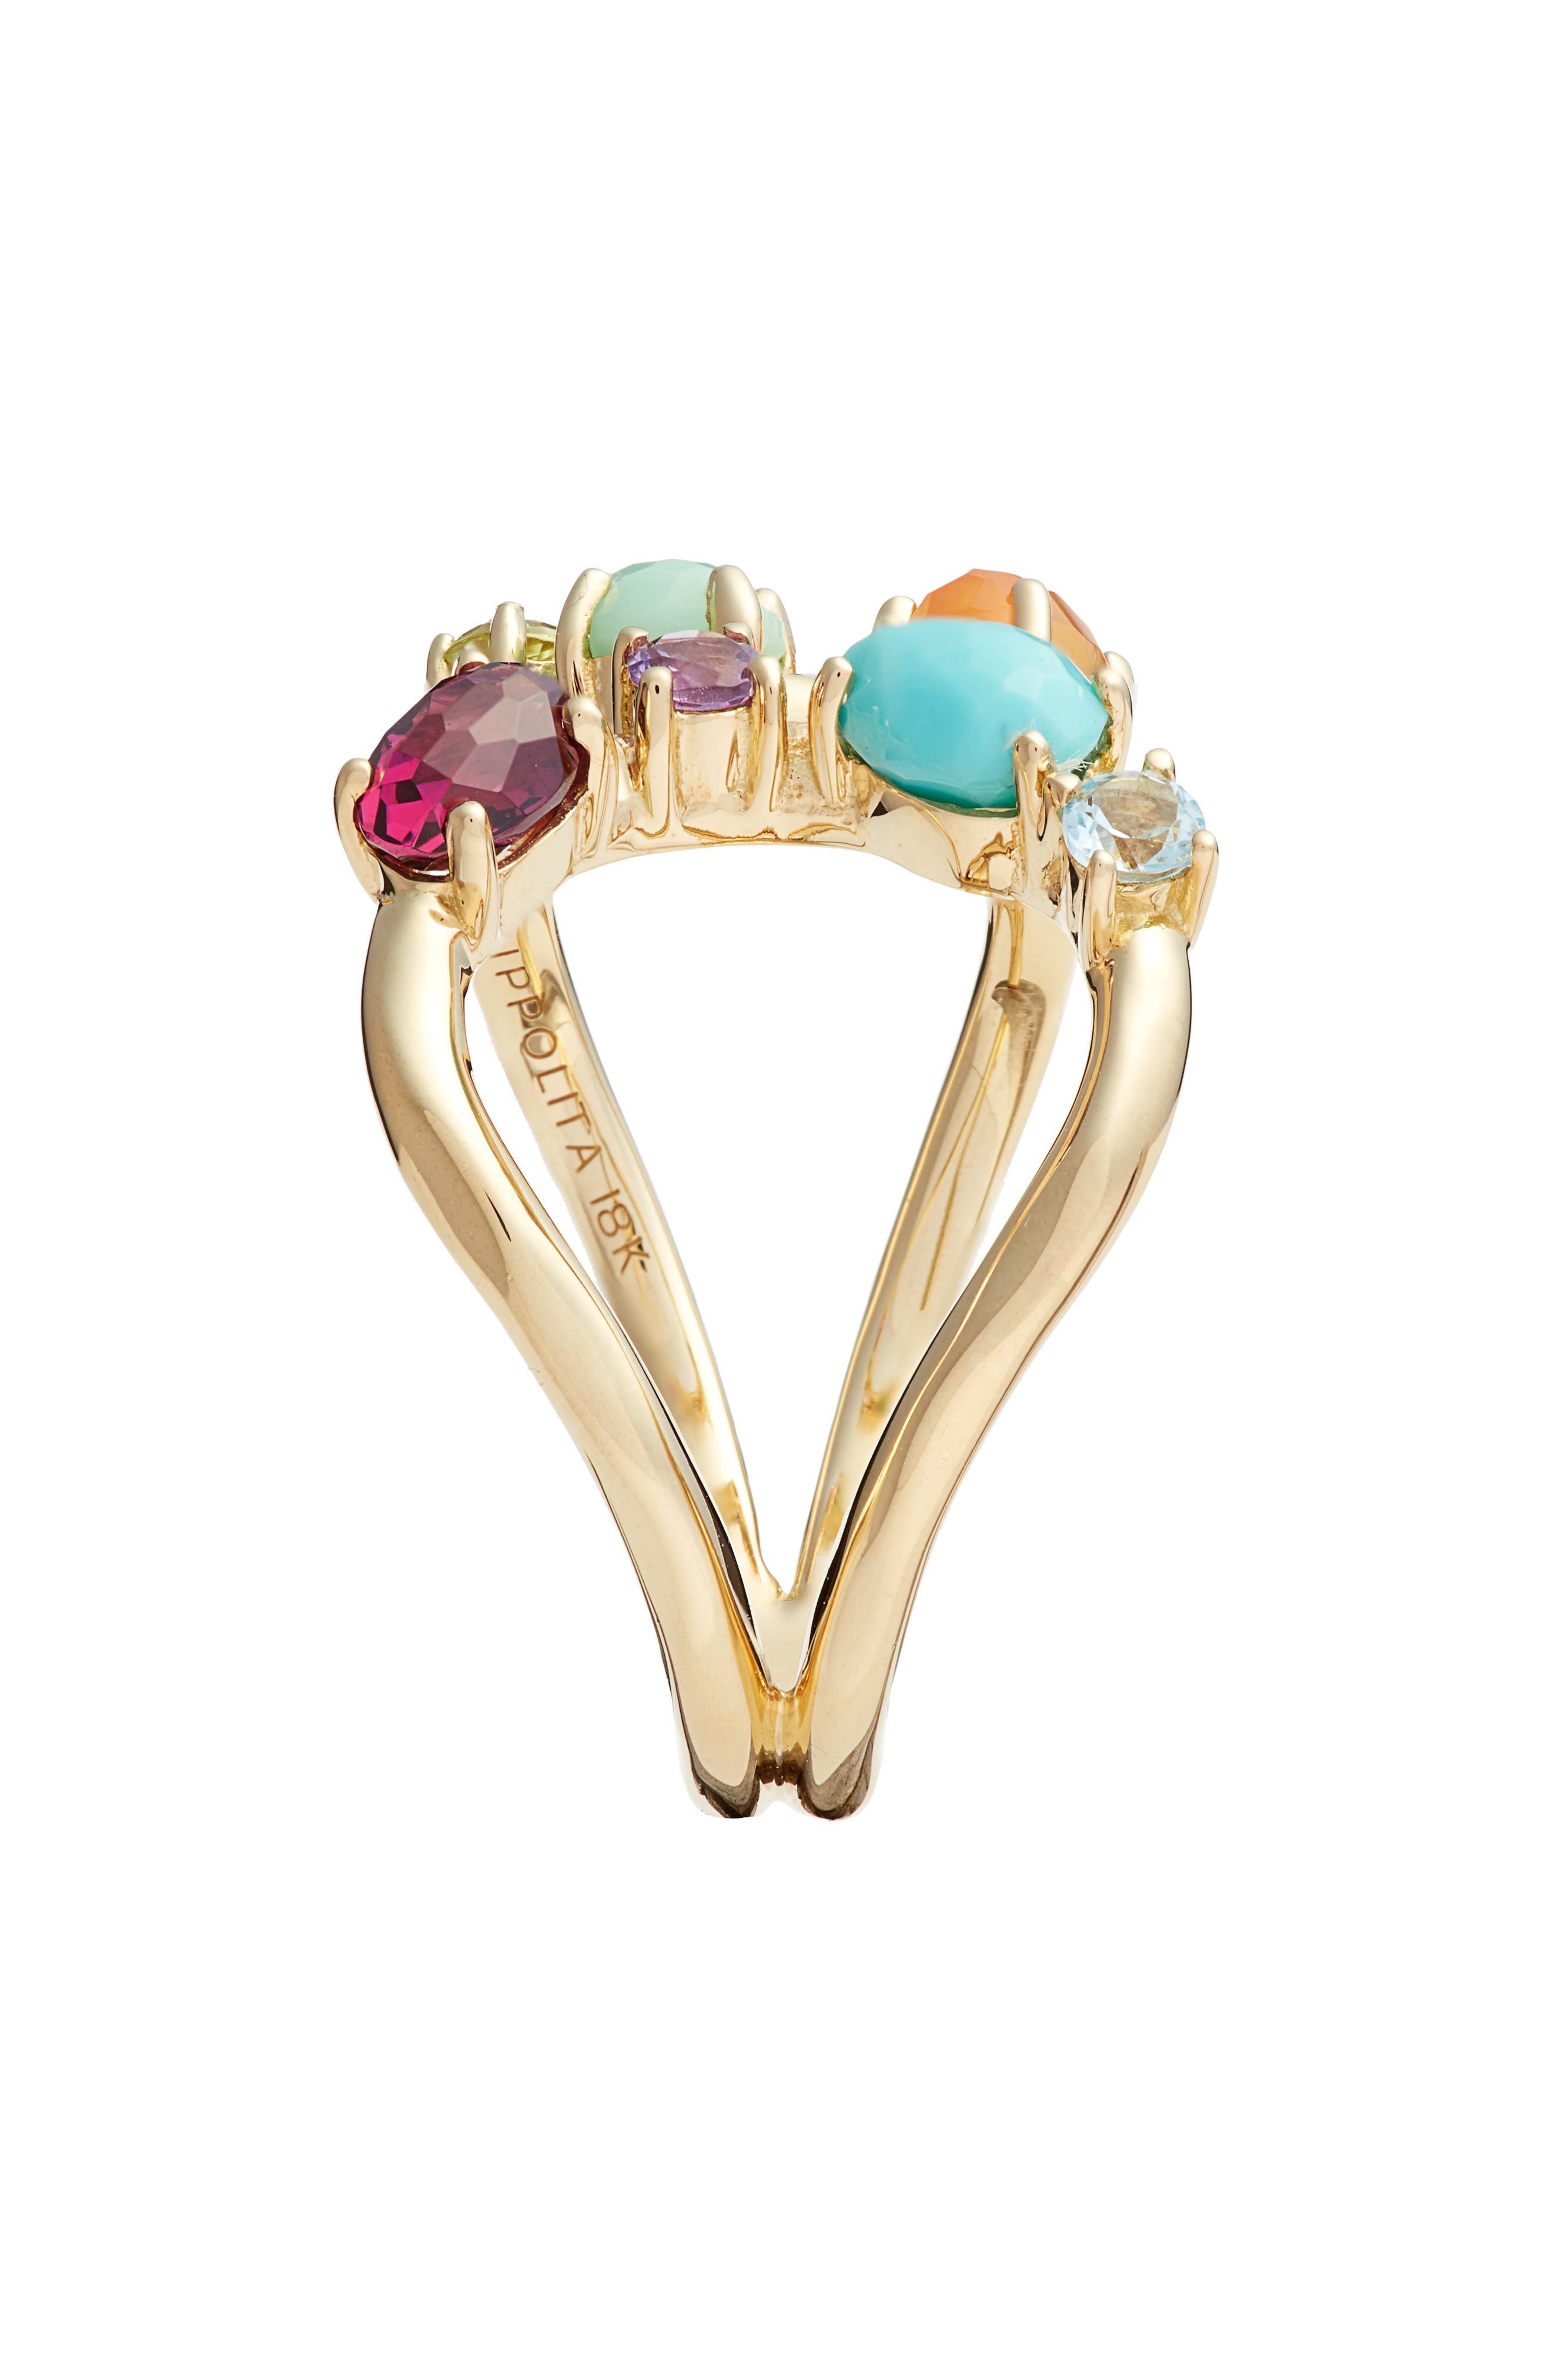 Rock Candy 18K Gold Open Ring,                             Alternate thumbnail 2, color,                             GOLD/ MULTI